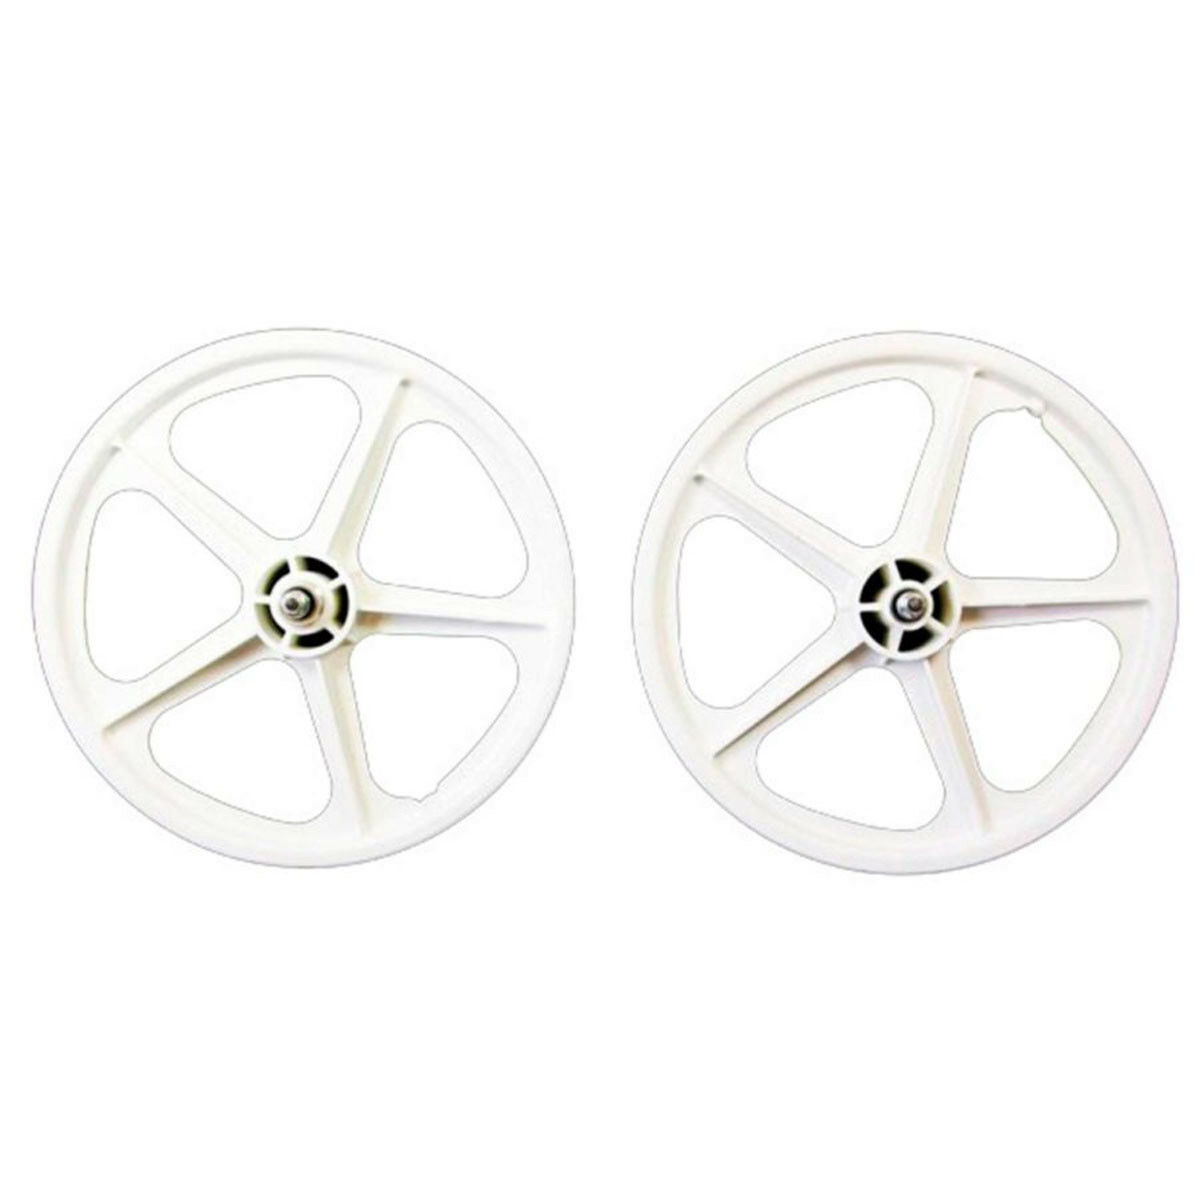 Skyway Tuff II Wheel Set - 16X1.75 3 8 Nutted Fw 5 Spoke - White - WHL-1801P